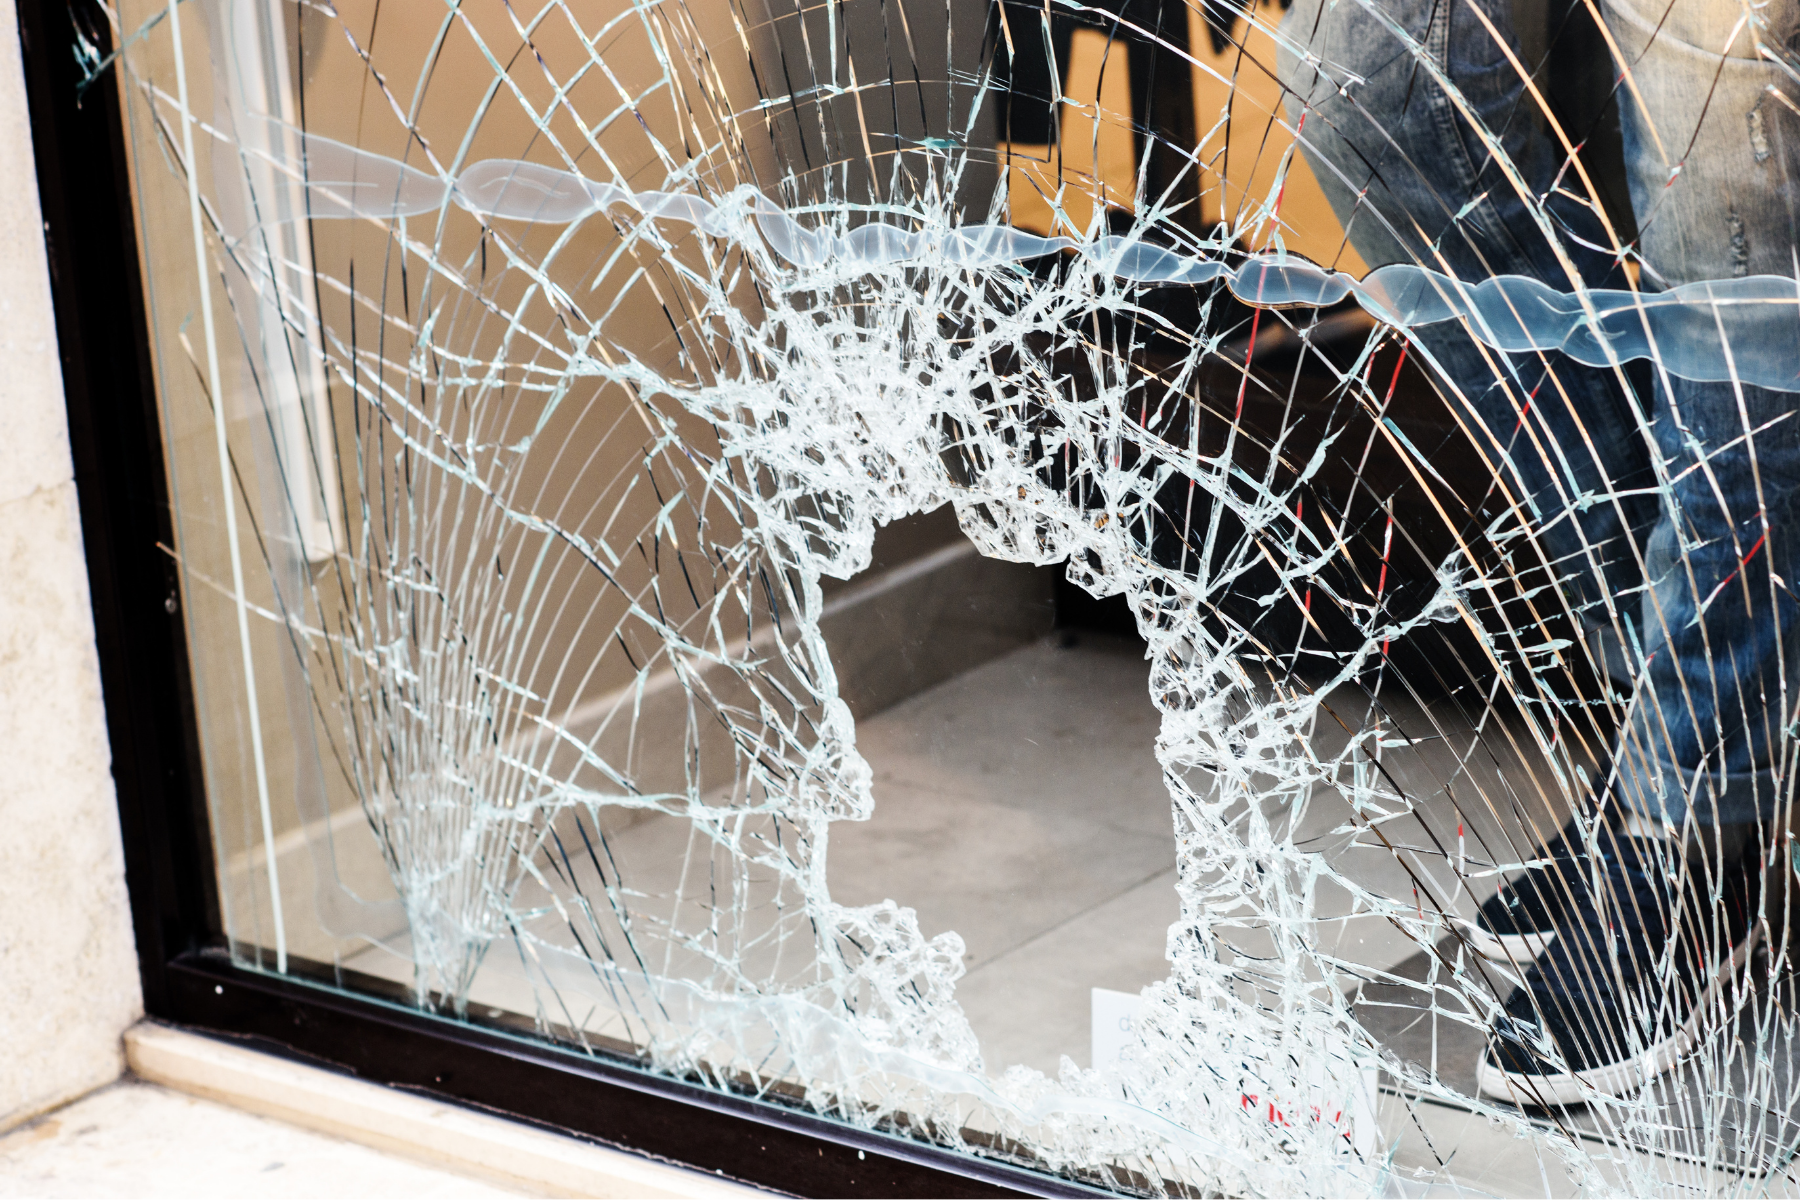 Considering the recent increase in social unrest, you may wonder whether your property insurance will respond if you face property damage as a result of a civil disturbance. The answer is usually yes. Most property policies cover damage from riots and civil disturbances. Insurers designed both the business owners policy and the commercial property policy to protect business owners against certain losses from civil unrest. However, you may need additional coverage for plateglass windows and inventory spoilage. If you must suspend business operations due to a civil disturbance, you may lose income. Your property or package policy may provide coverage for business income losses but normally only if your building sustains damage or civil authorities restrict your access. Damage to your commercial building and vehicles is subject to your deductible and any limits on your policy. Now is a great time to call your agent to review your property coverage as the summer heats up.